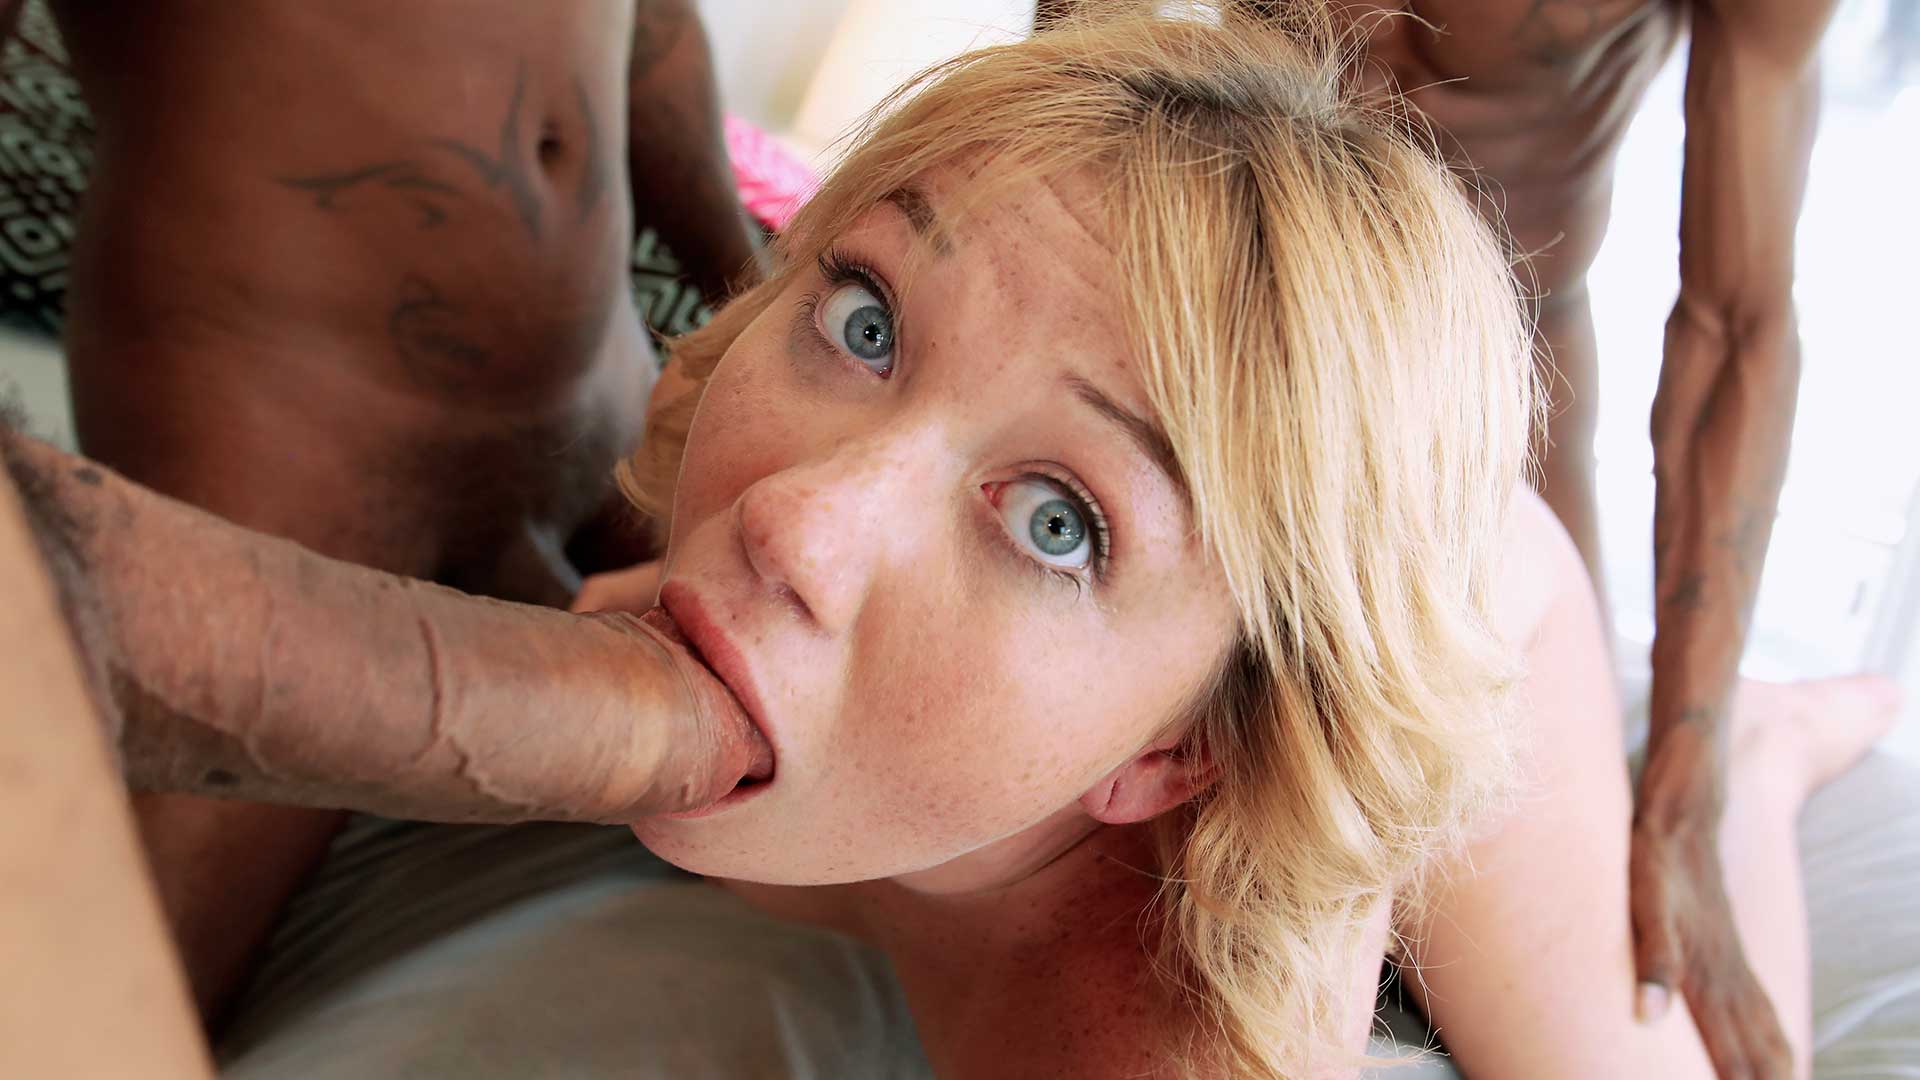 WatchingMyDaughterGoBlack Zelda Morrison Interracial Porn